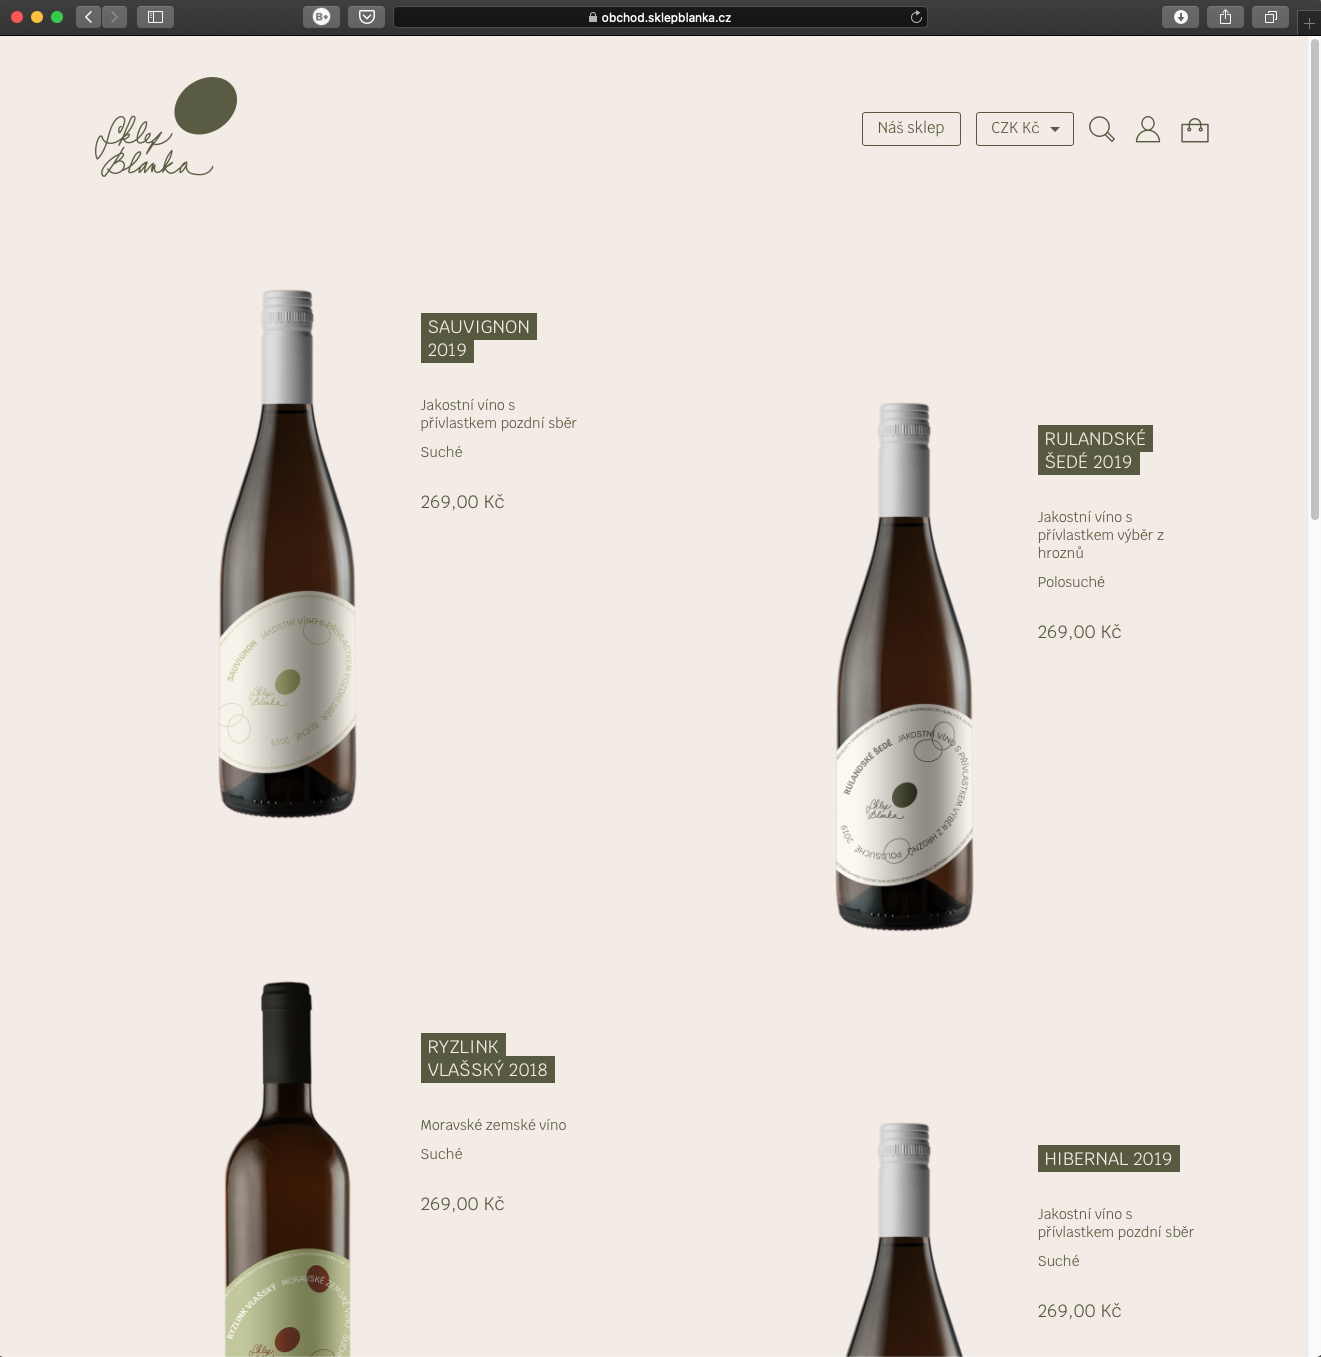 Screenshot-2020-07-09-at-10.27.08-1